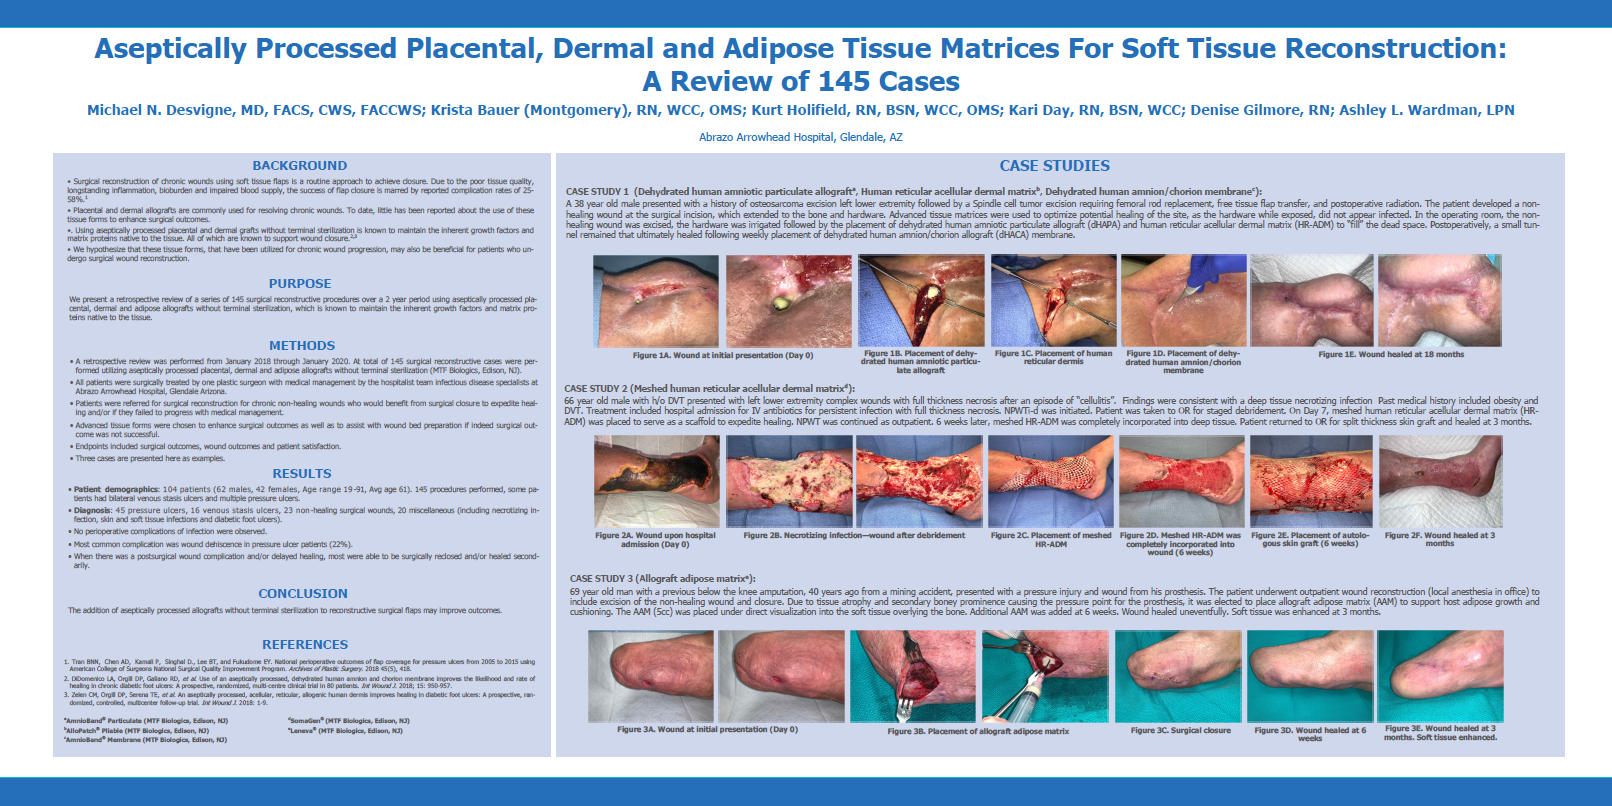 Desvigne M., Bauer K., Holifield K., Day K., Gilmore D., Wardman A. Aseptically Processed Placental, Dermal and Adipose Tissue Matrices For Soft Tissue Reconstruction: A Review of 145 Cases. SAWC 2020 Fall.